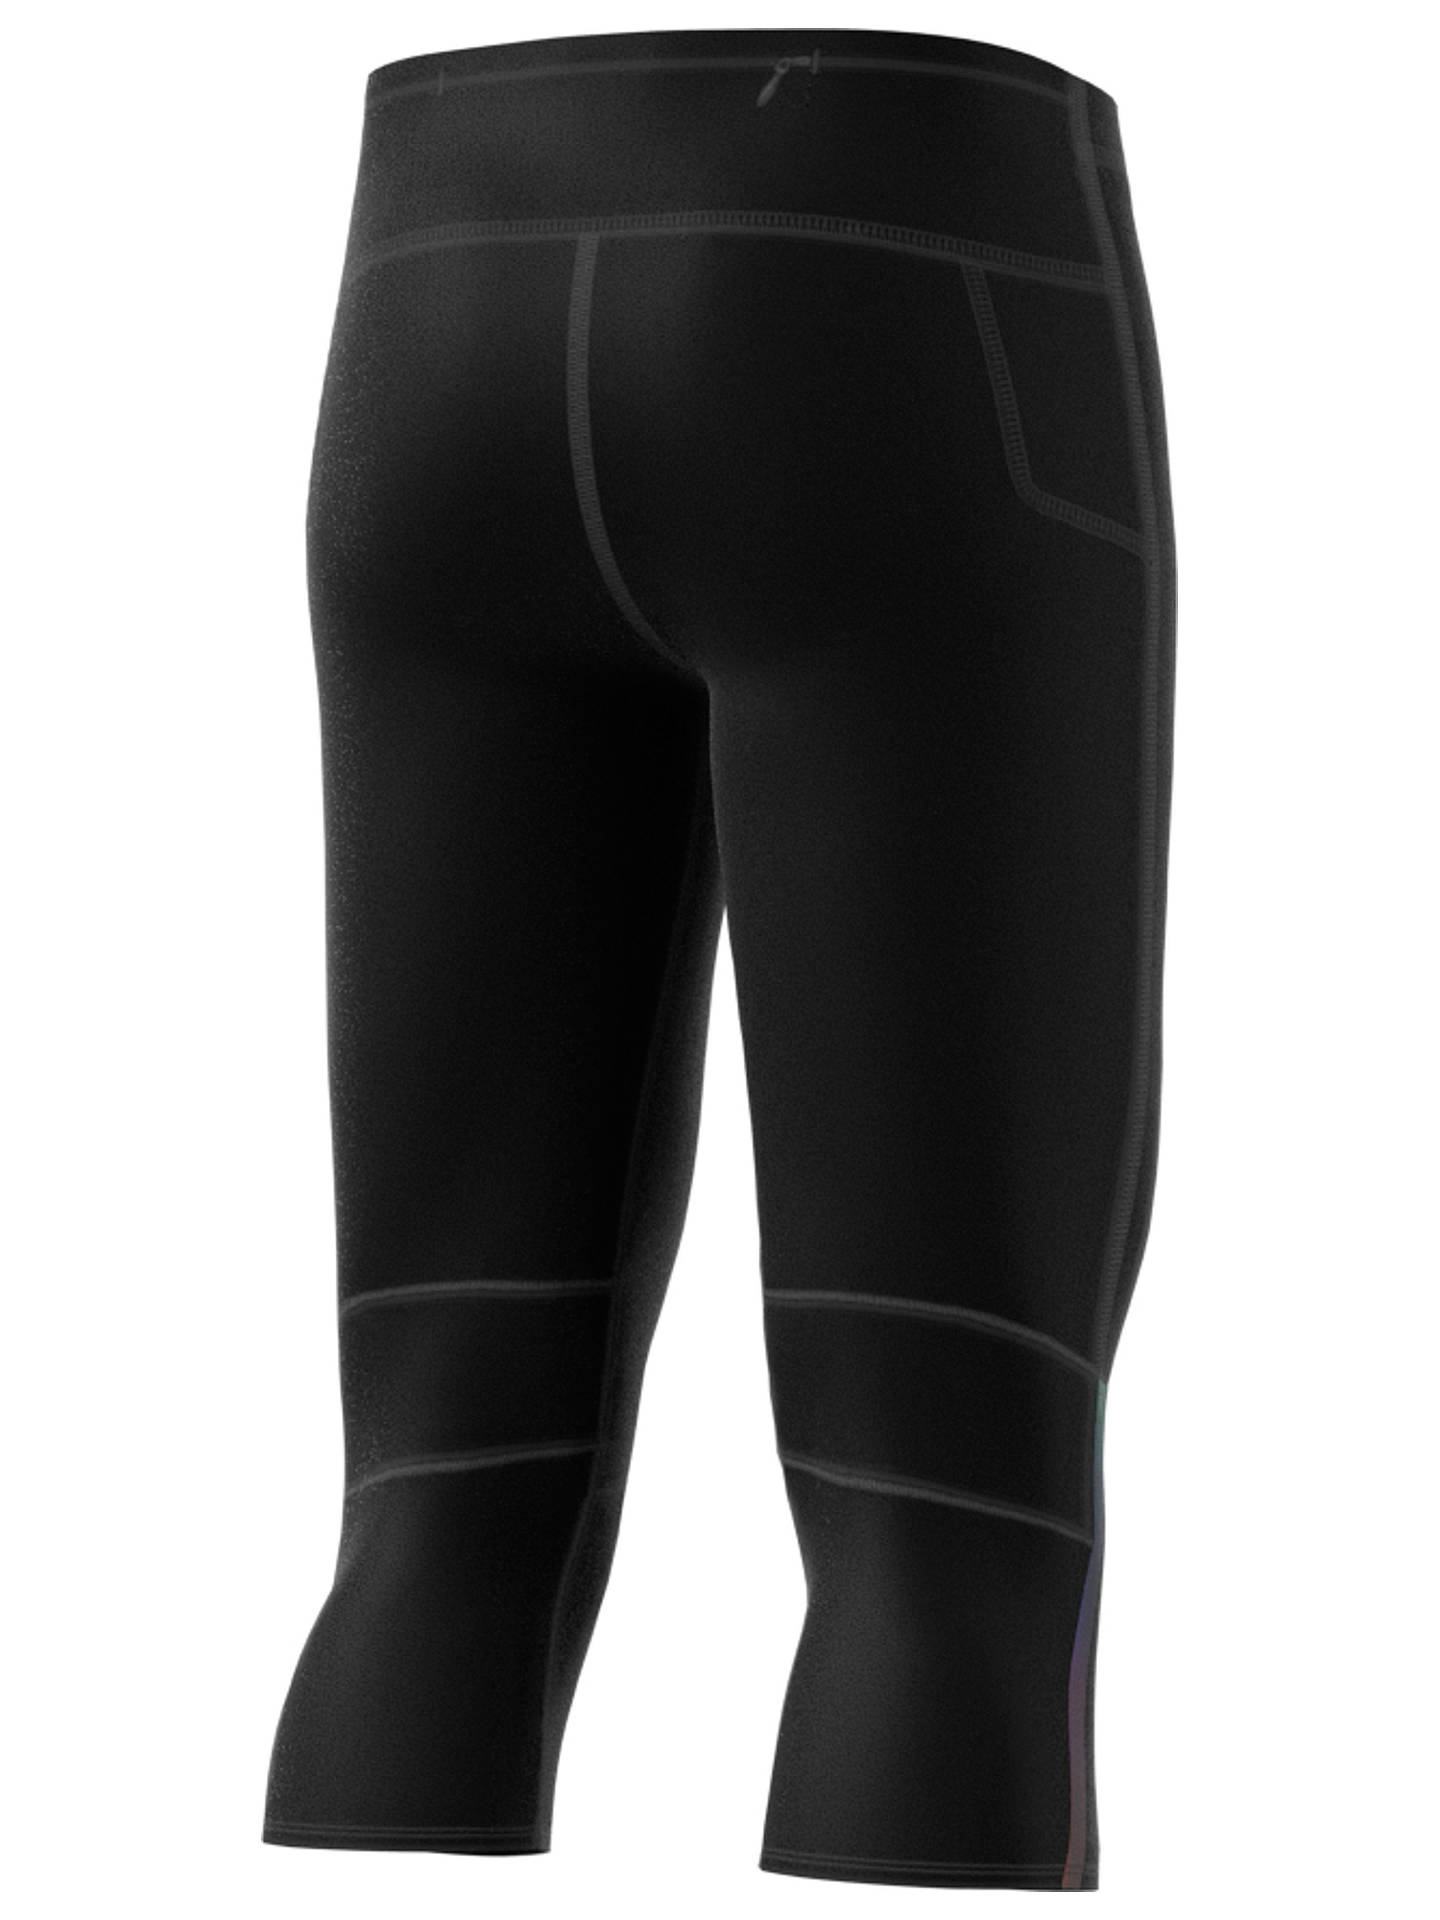 Buyadidas Supernova Running Tights, Black, S Online at johnlewis.com